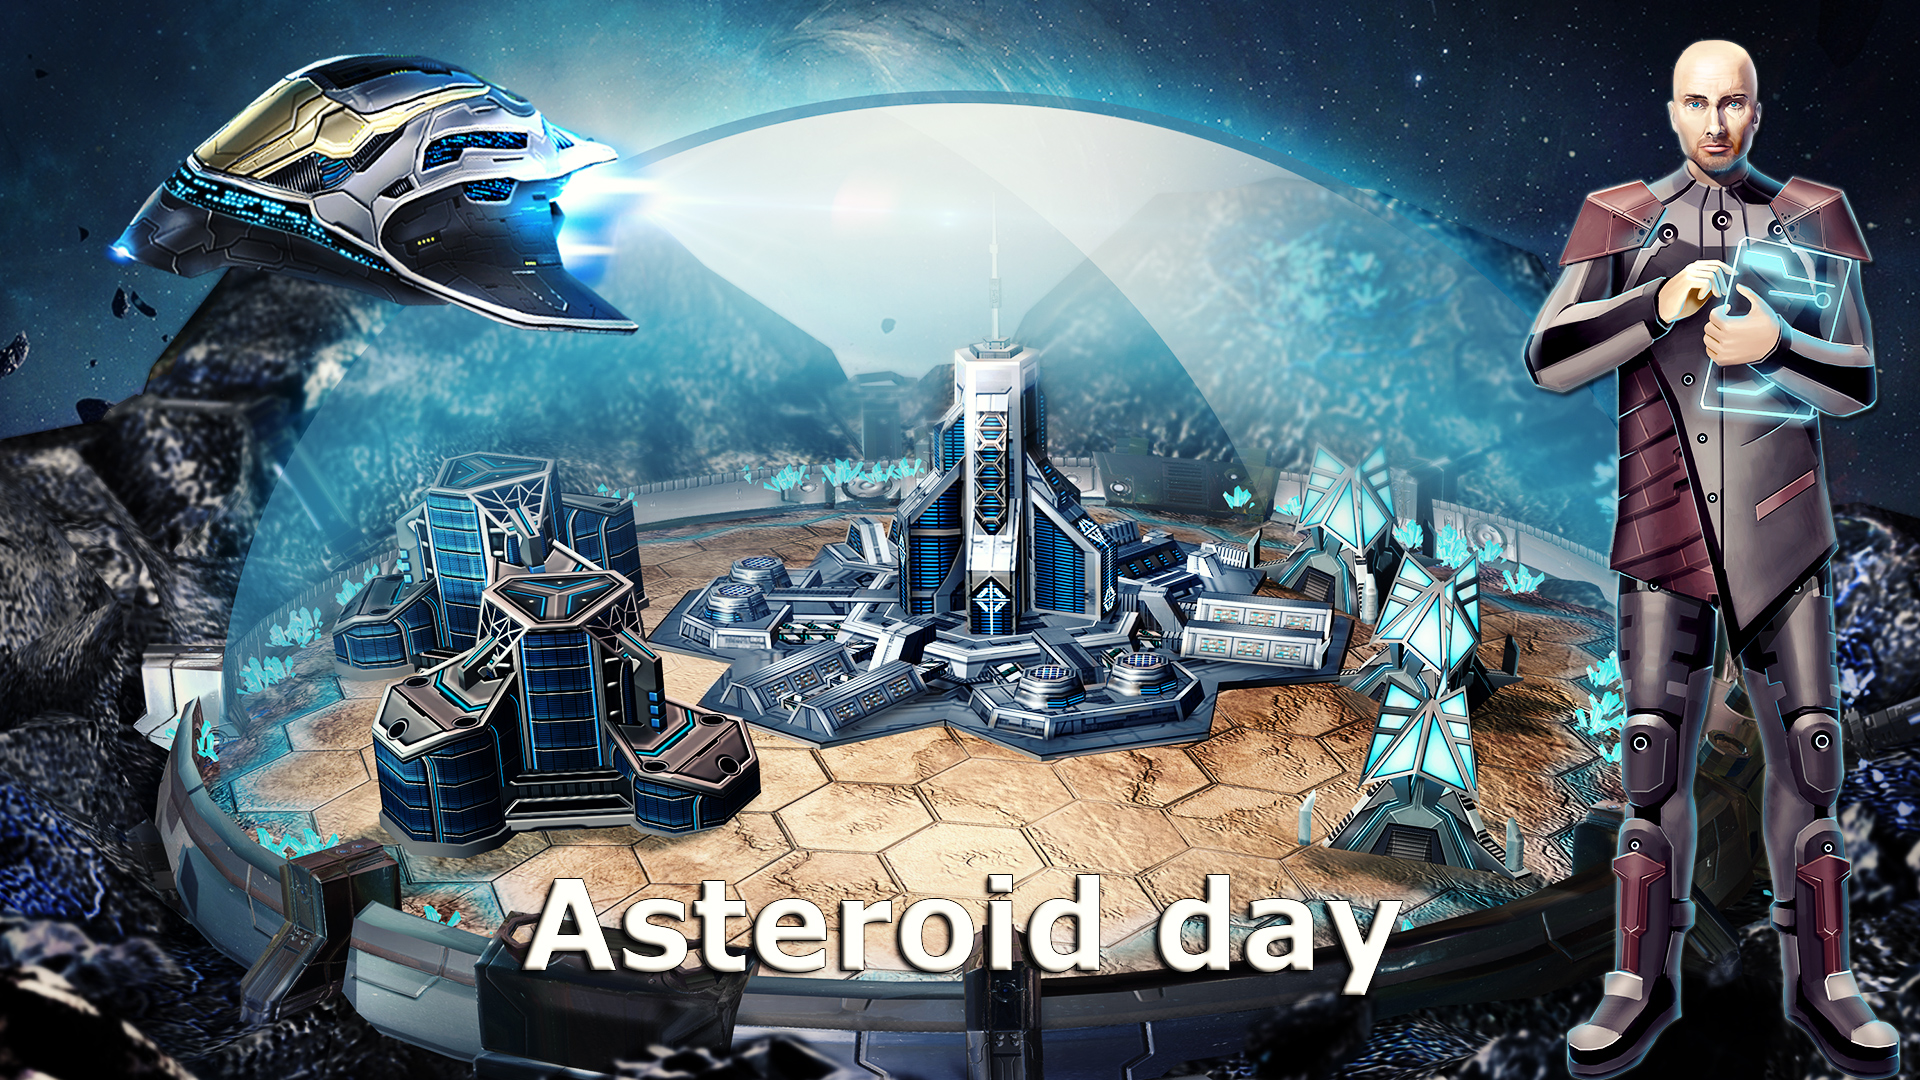 asteroid day astrolords lord game mmo online unity3d strategy